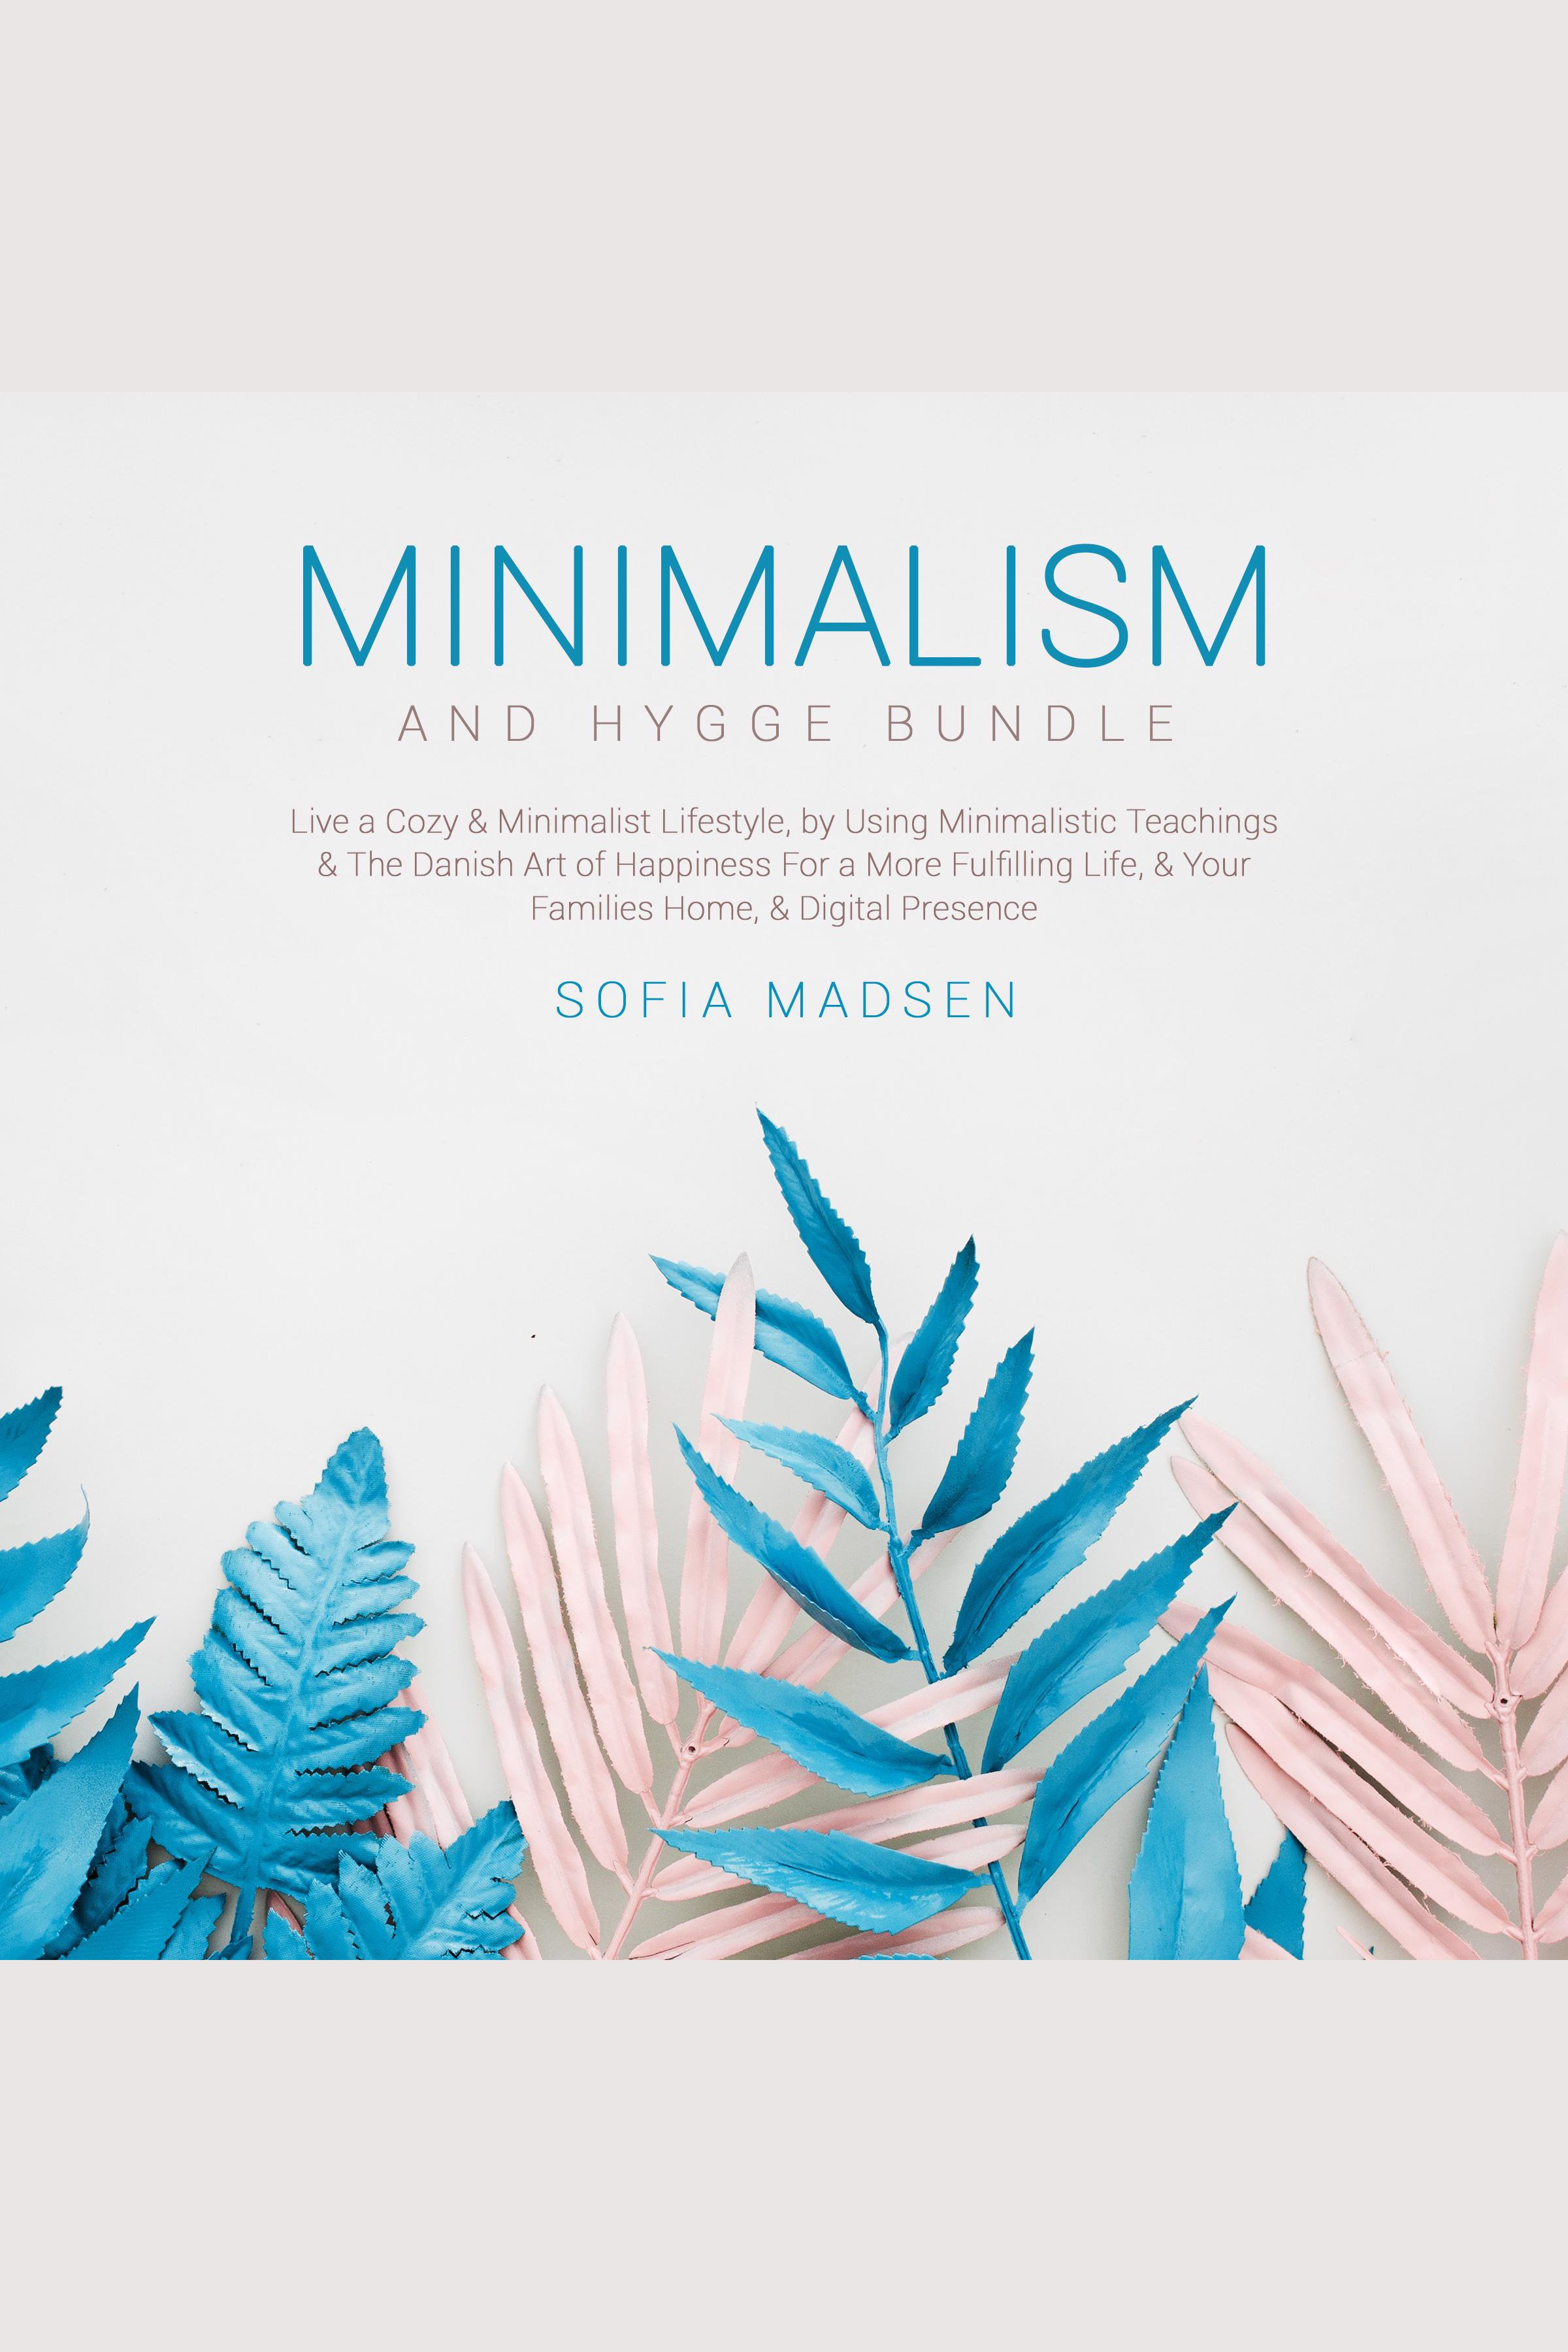 Minimalism & Hygge Bundle Live a Cozy & Minimalist Lifestyle, by Using Minimalistic Teachings & The Danish Art of Happiness For a More Fulfilling Life, & Your Families Home, & Digital Presence